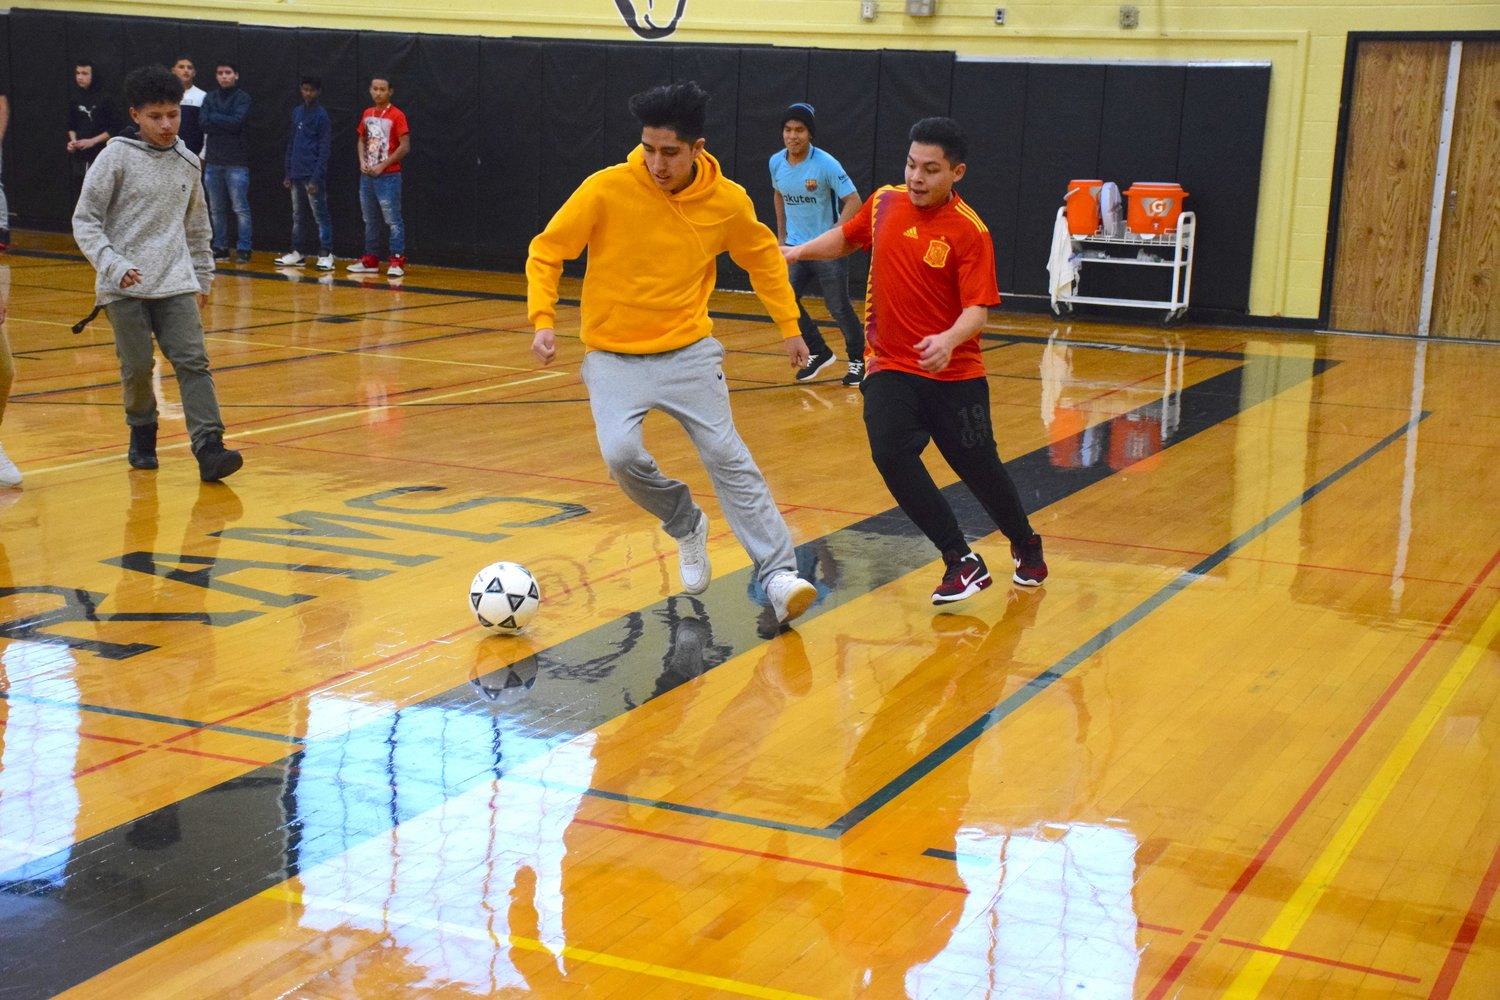 West Hempstead's ENL students played a soccer game during a Thanksgiving luncheon in the high school gymnasium.